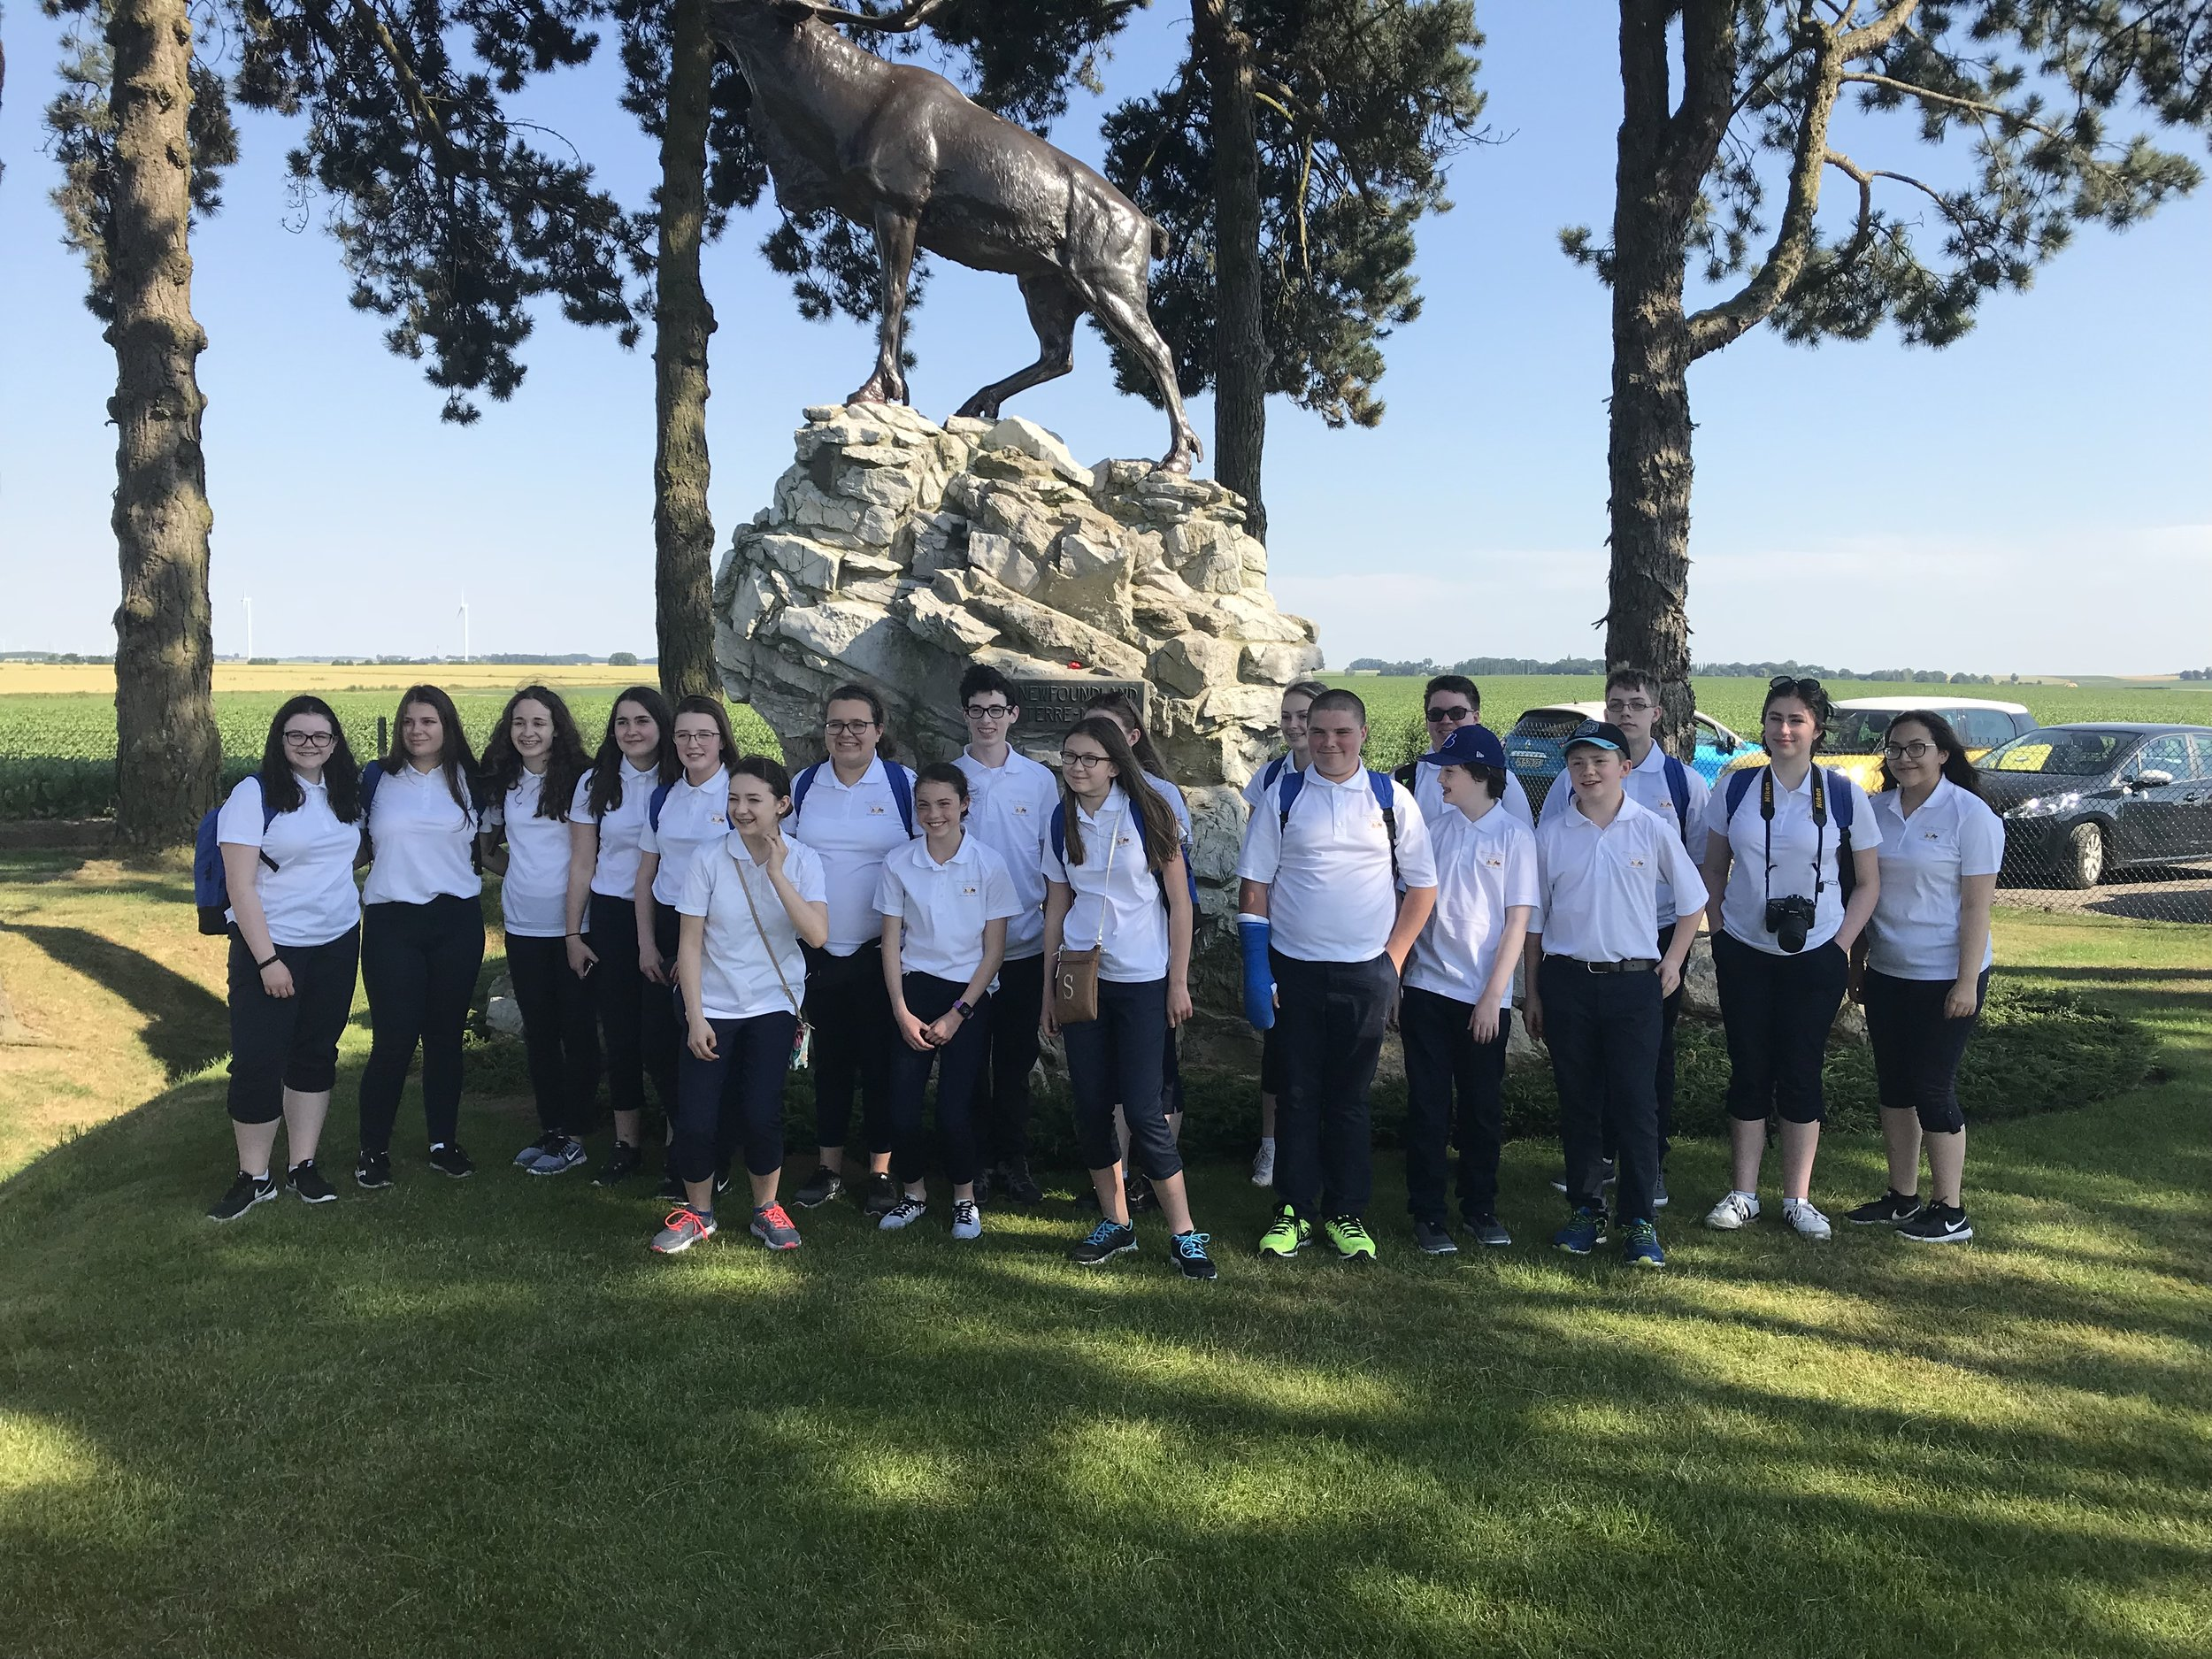 Student Ambassadors at the bronze caribou monument in Gueudecourt.